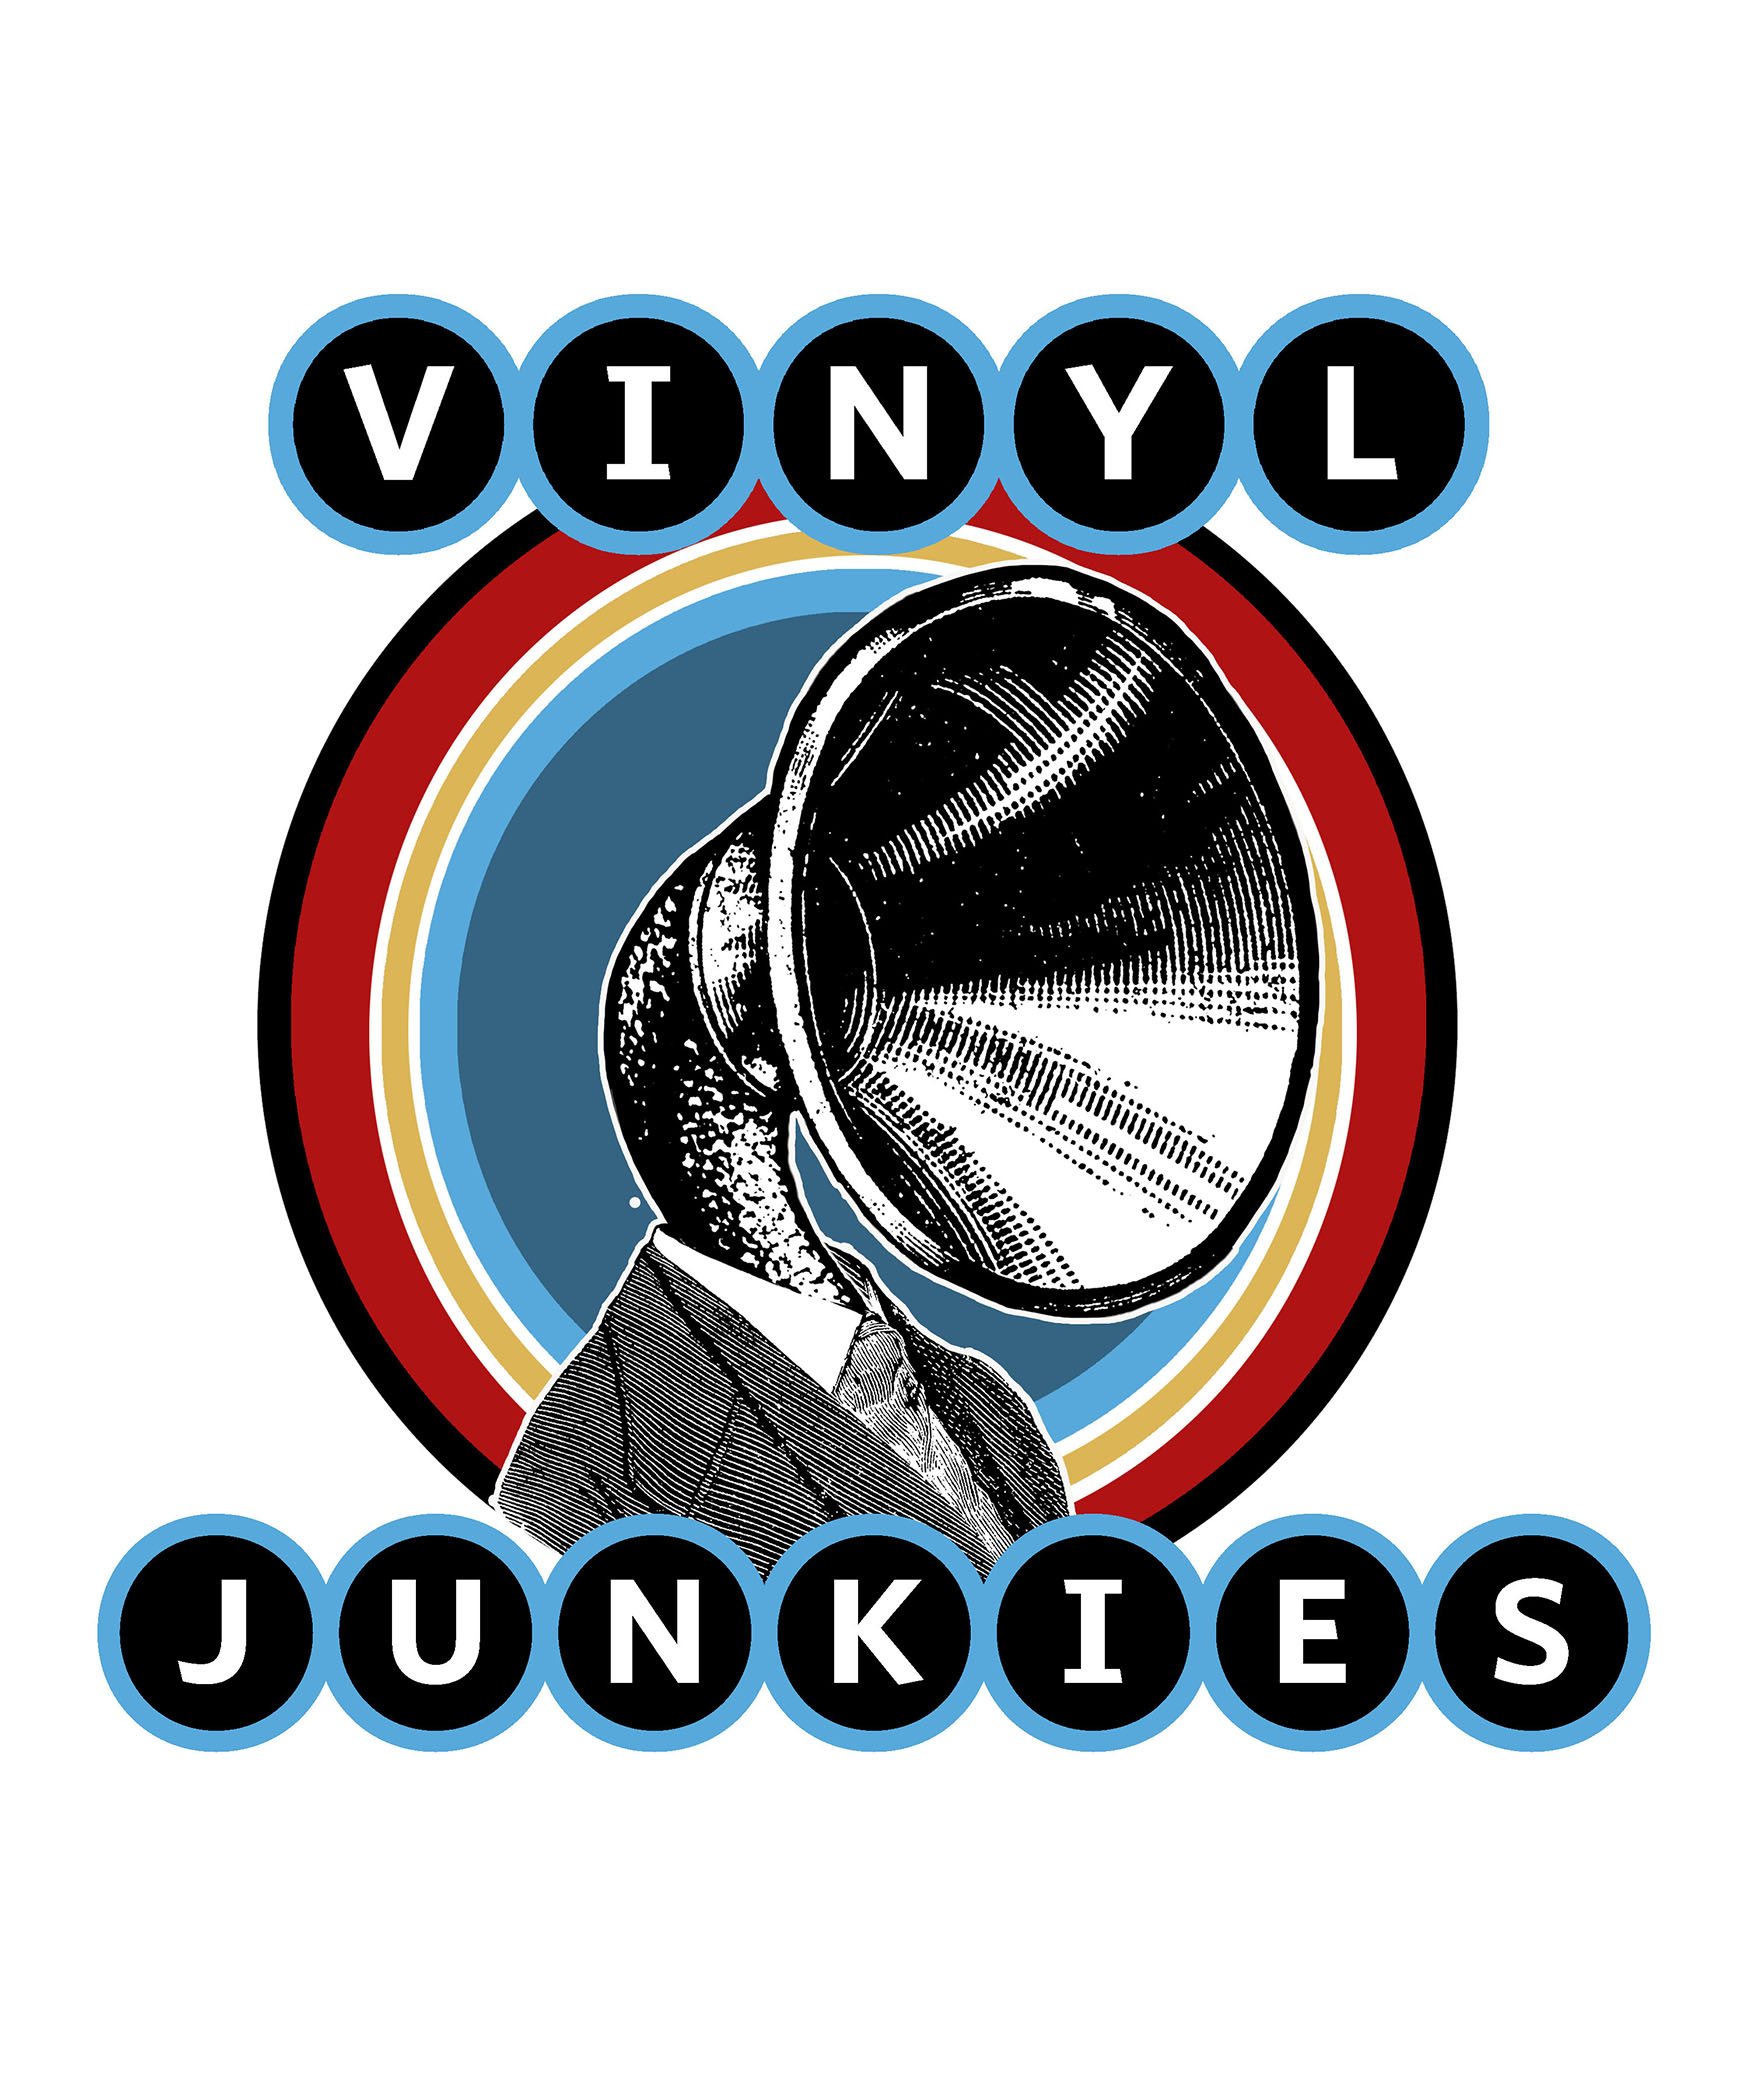 Artwork for Vinyl Junkies Vs. Run Out Groove Round 2